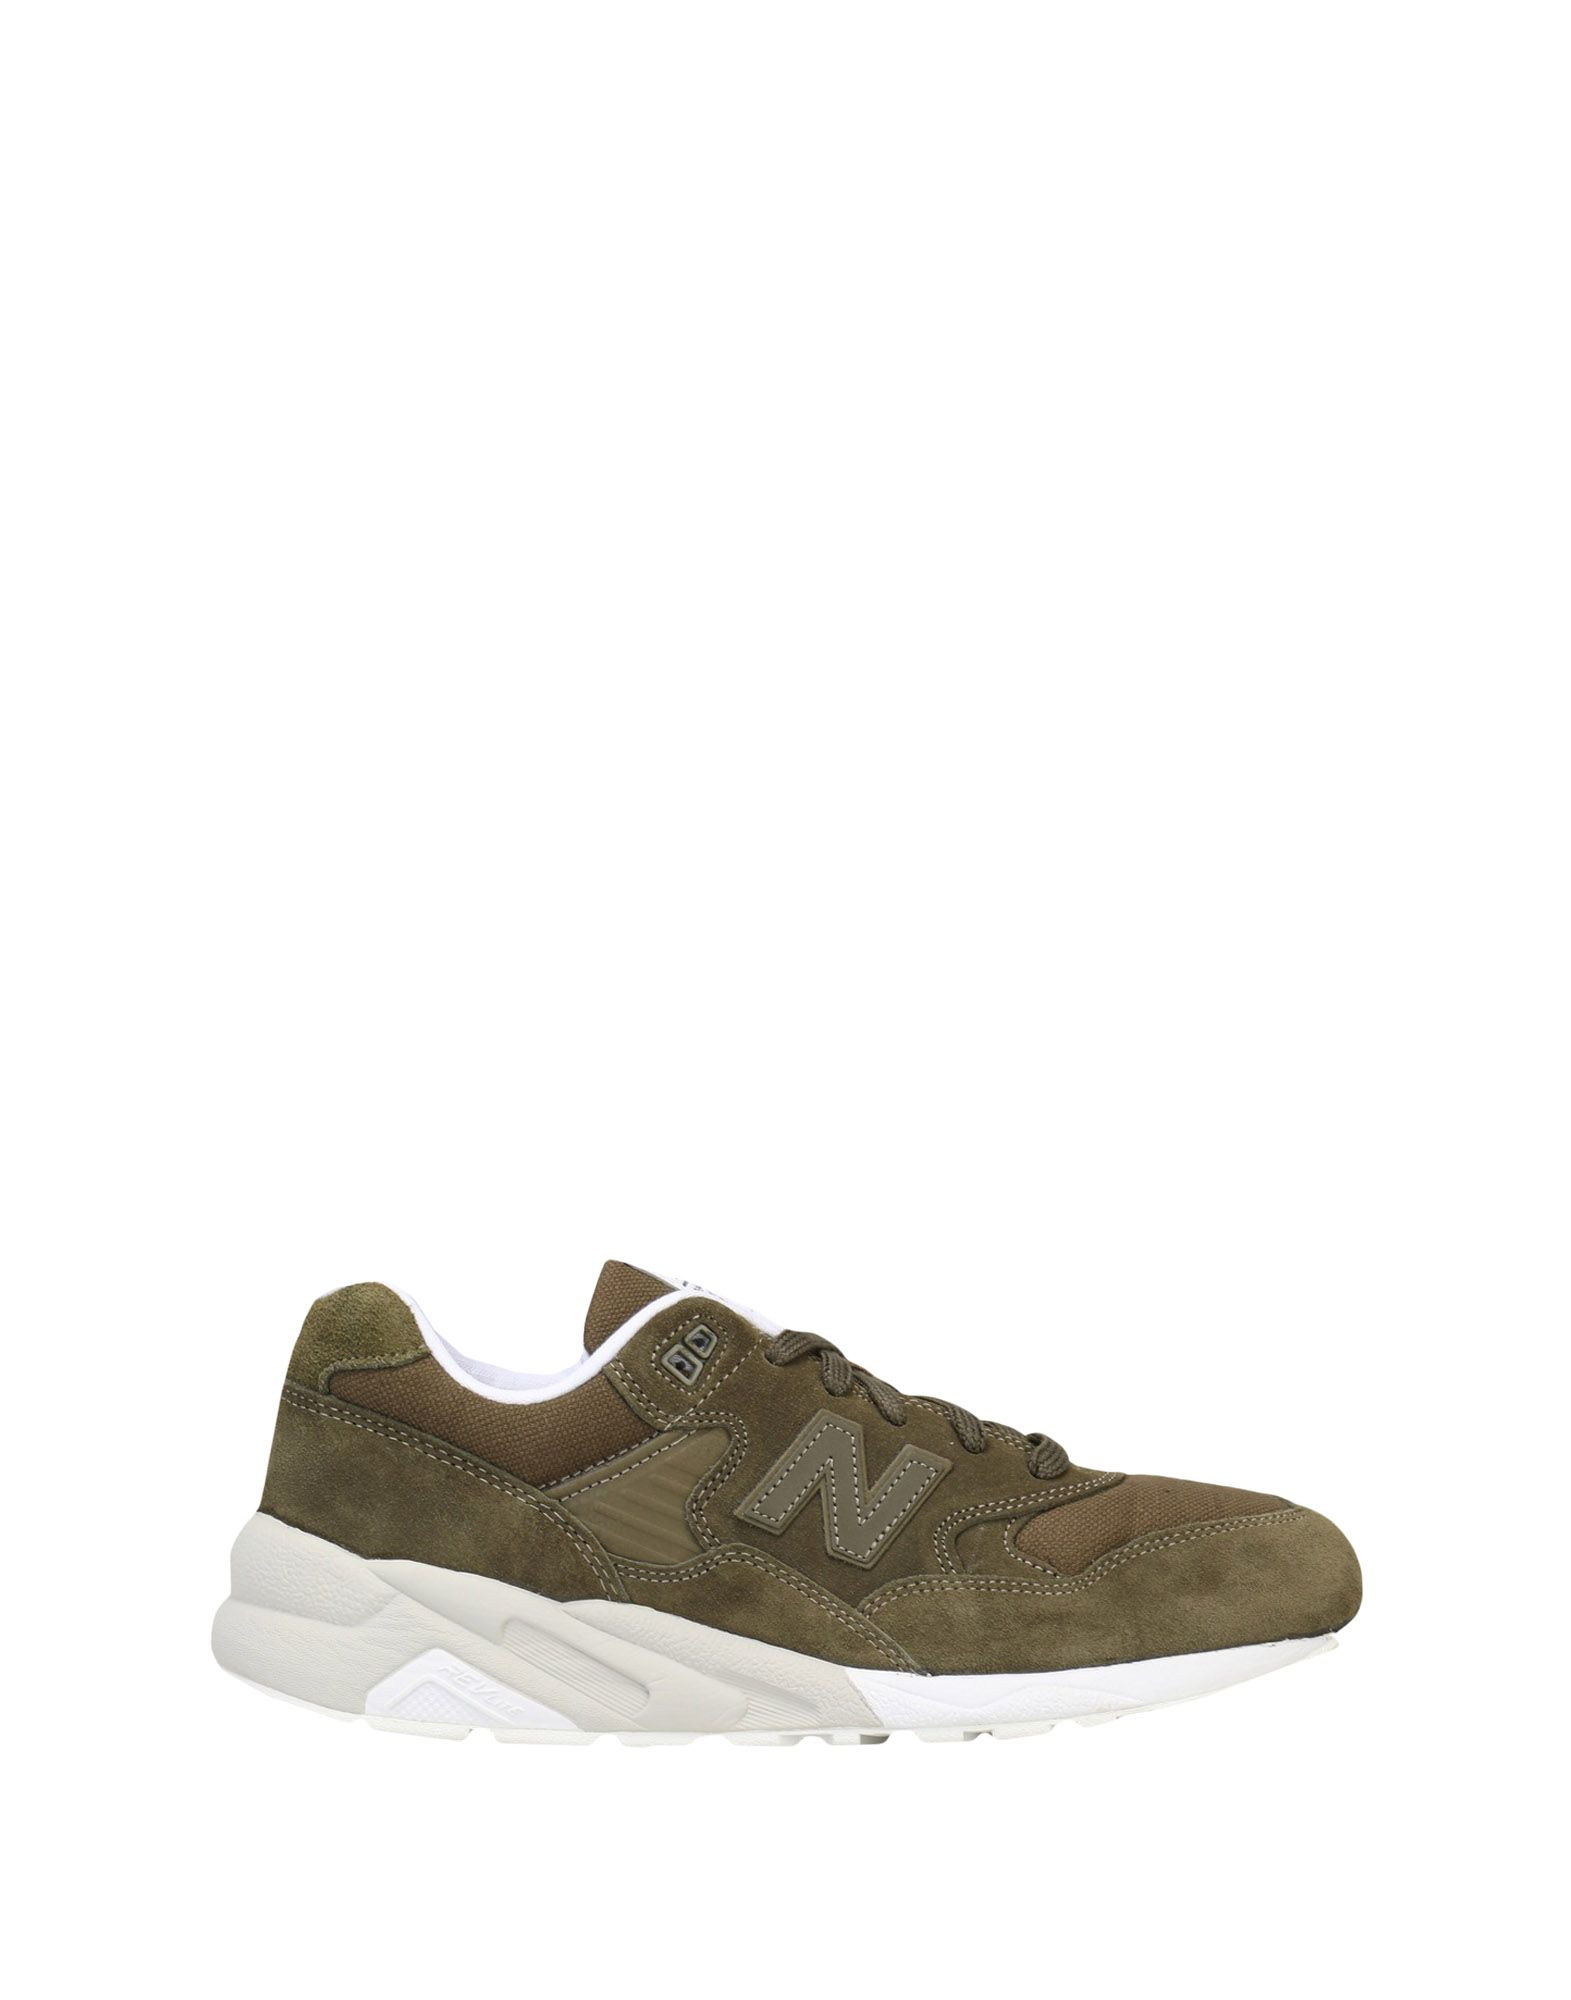 Sneakers New Balance 580 Luxury - Homme - Sneakers New Balance sur